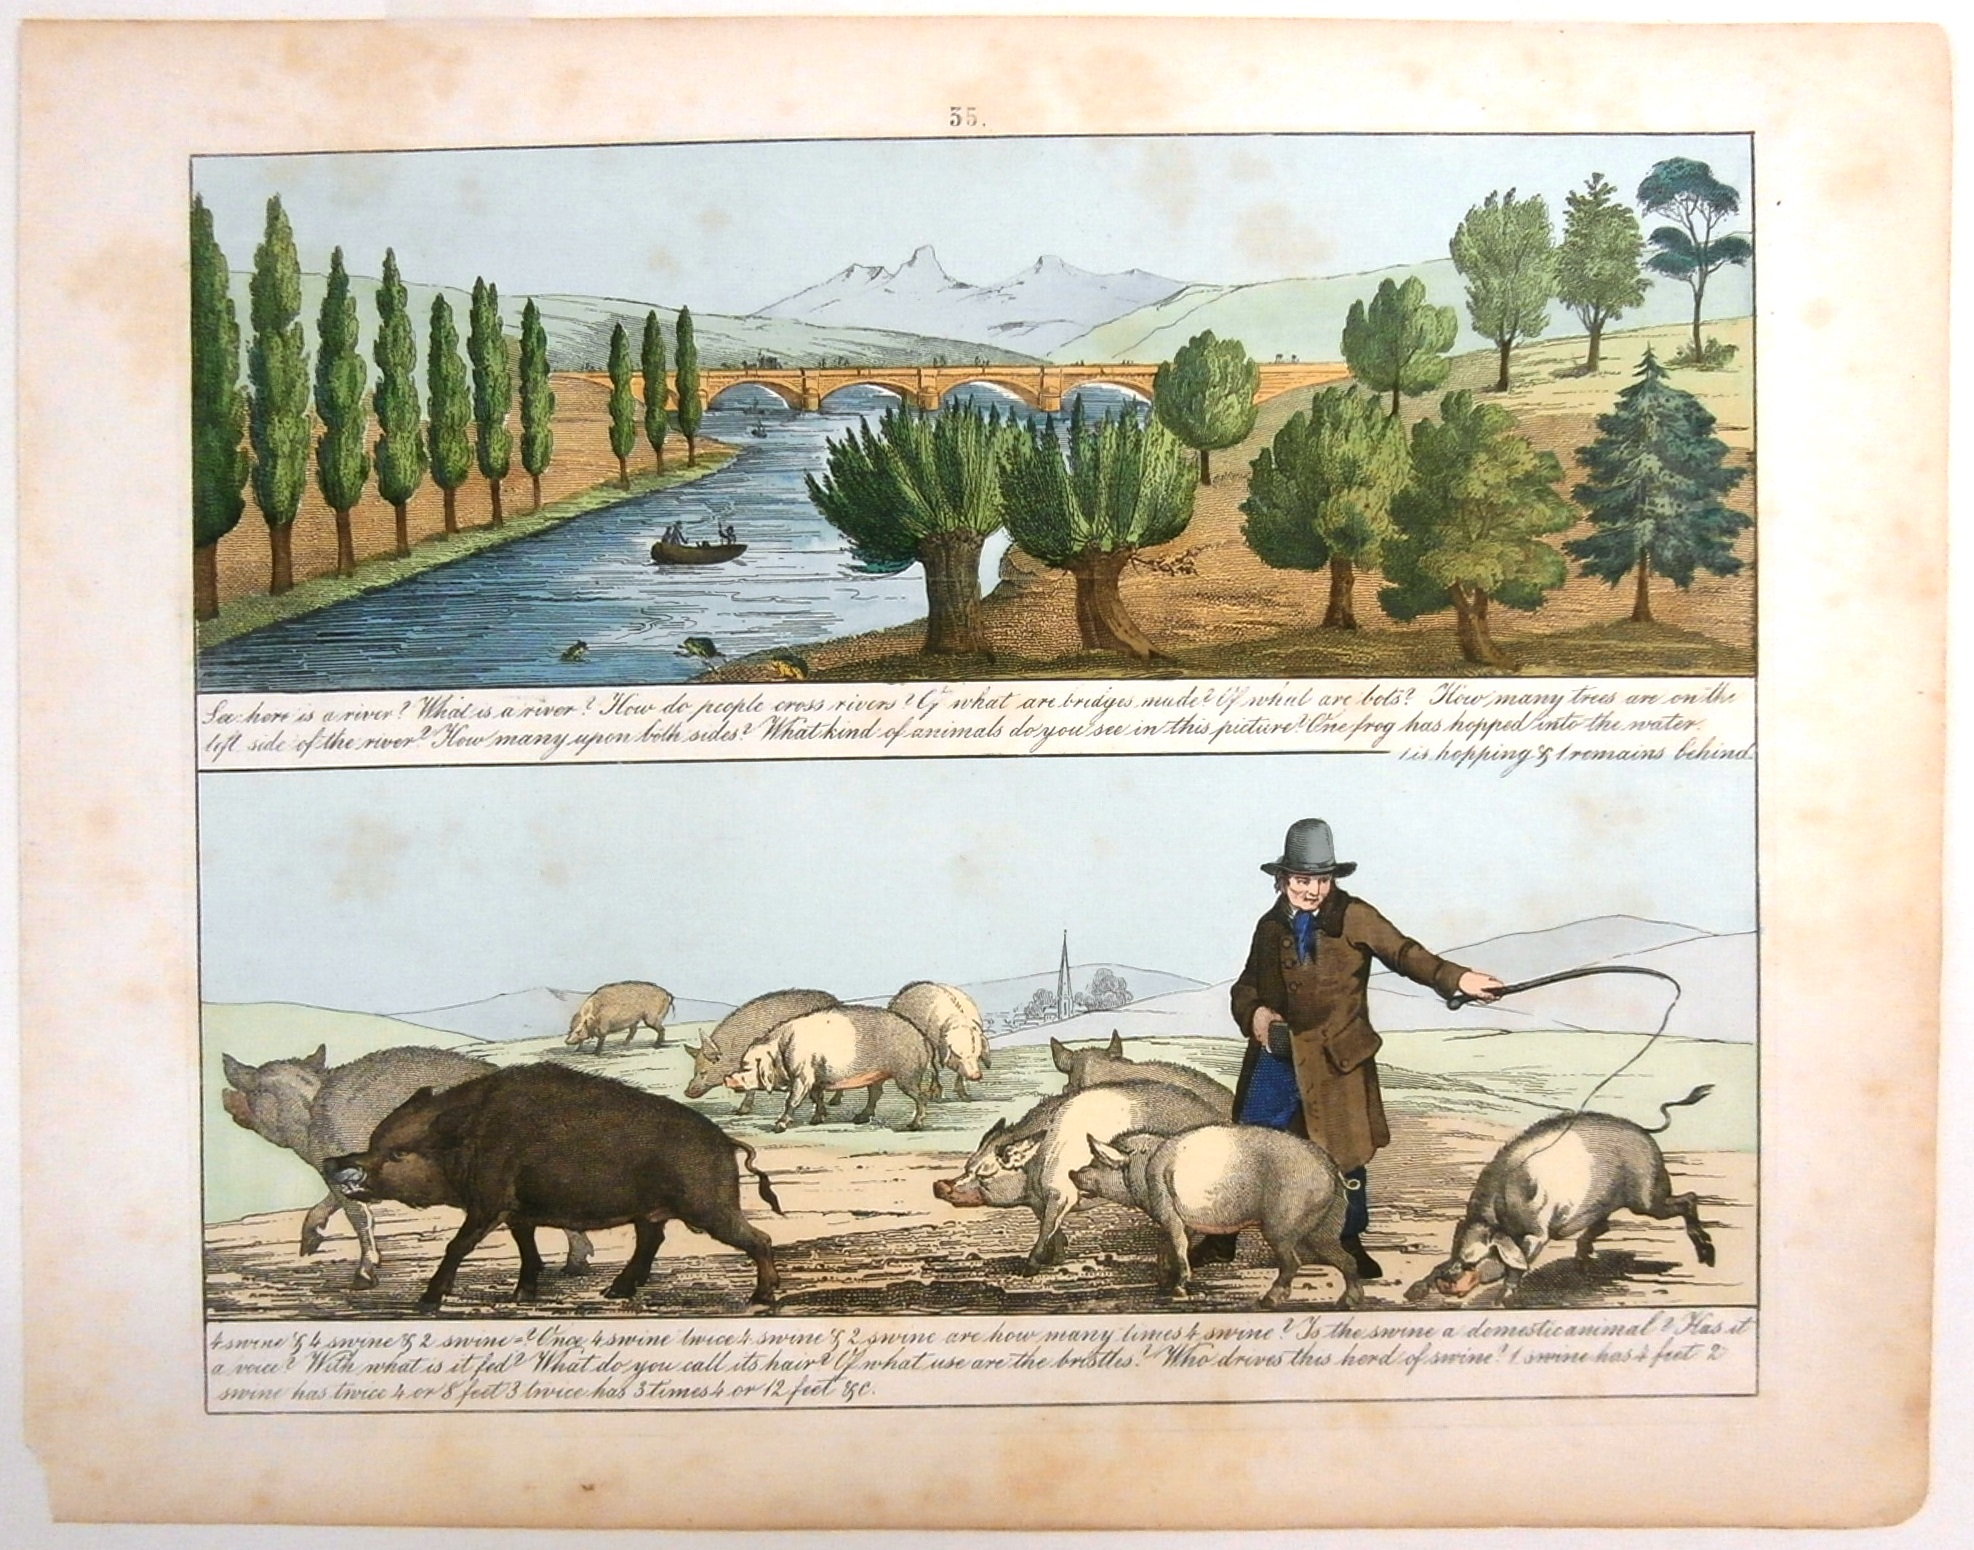 35-pictorial-lessons-pigs-river-1864.jpg